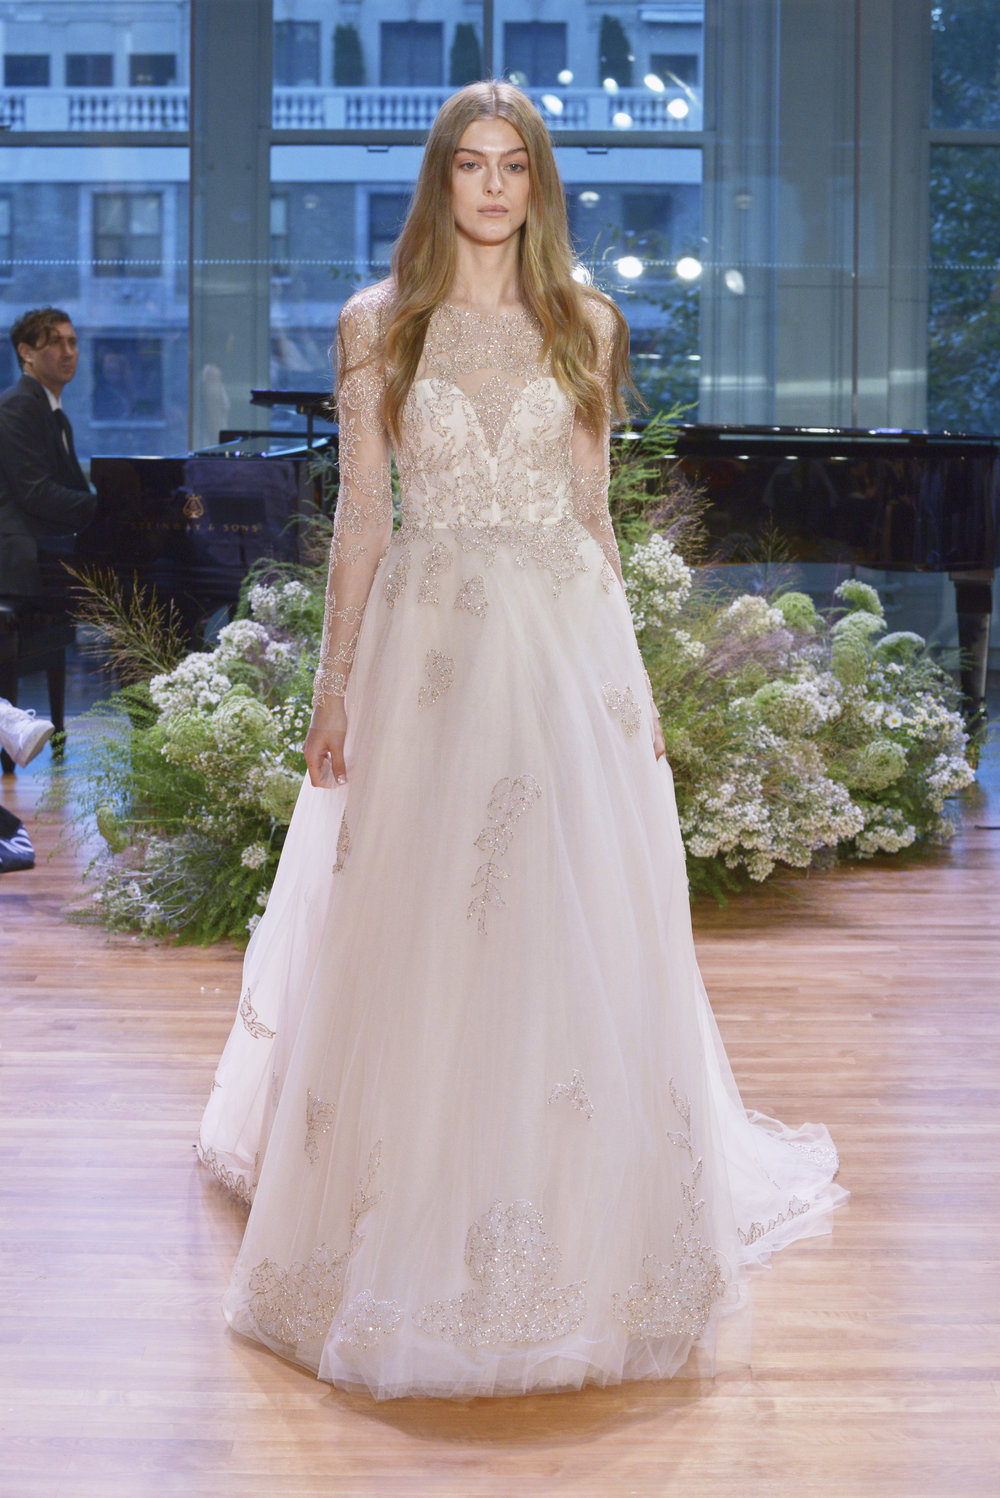 Season: Fall 2017    Gown name: Rhapsody    Description: An illusion long sleeve A-line gown with embroidery on bodice and skirt.